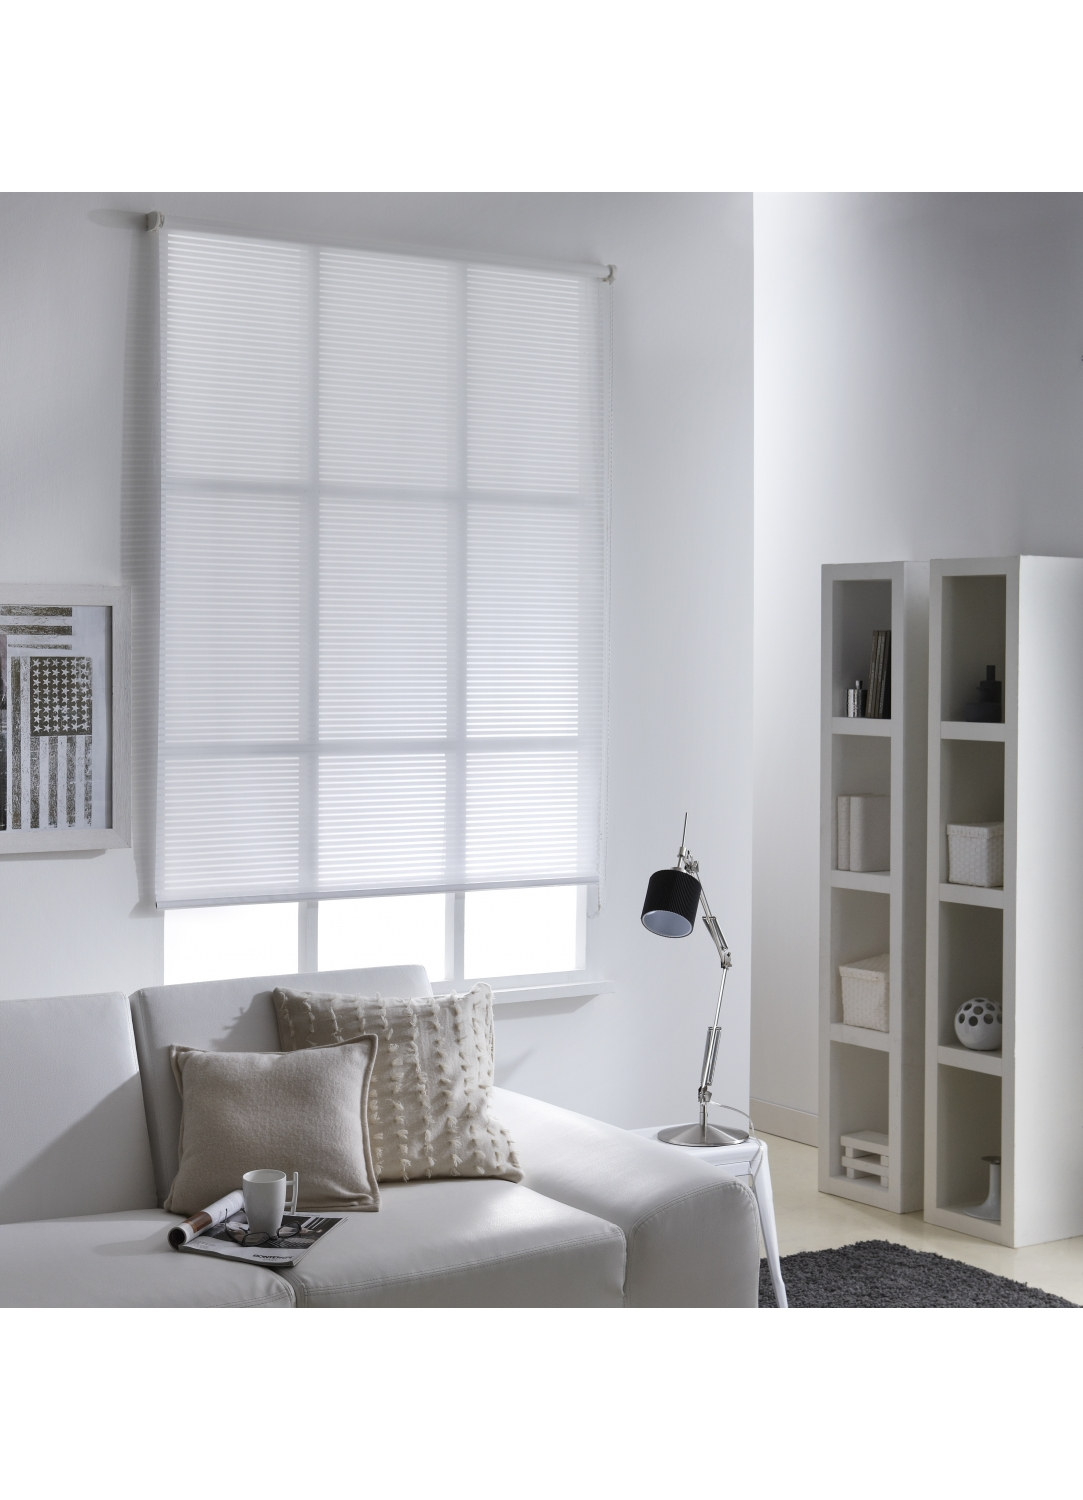 store enrouleur voile rayure ajour blanc homemaison vente en ligne stores enrouleurs. Black Bedroom Furniture Sets. Home Design Ideas